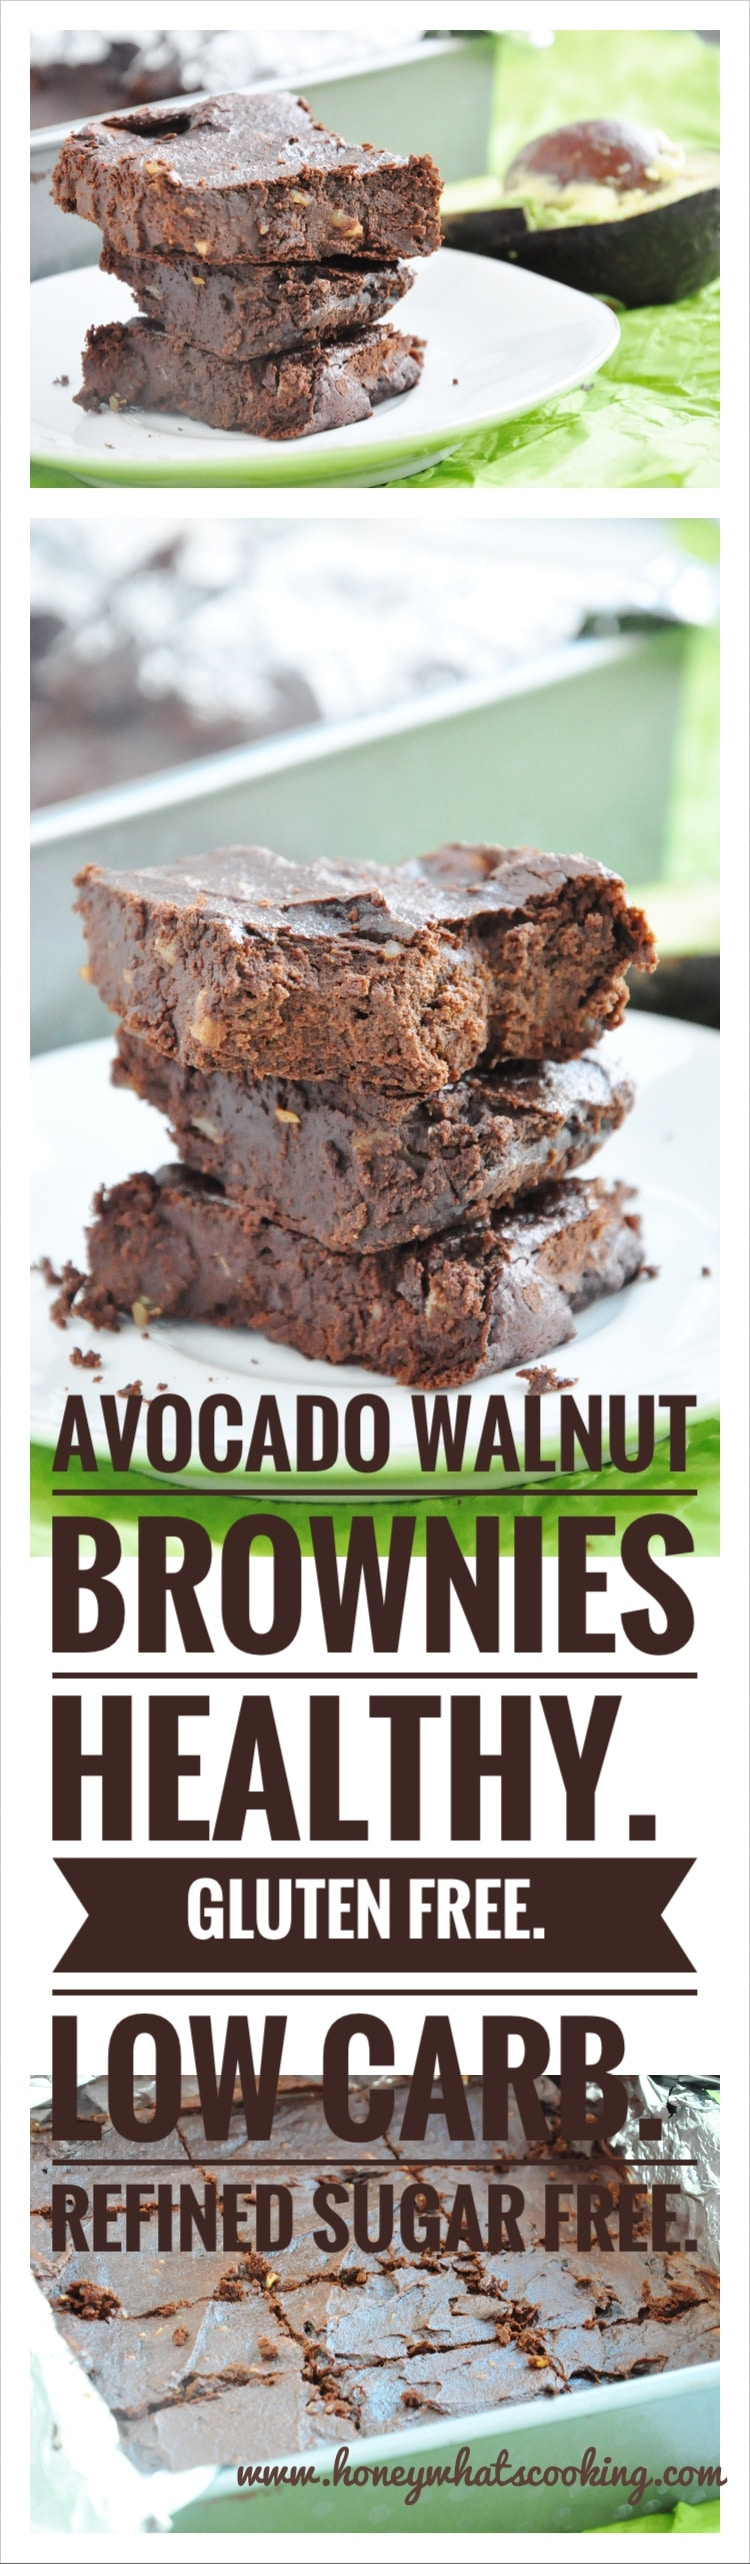 Avocado Walnut Brownies Pin